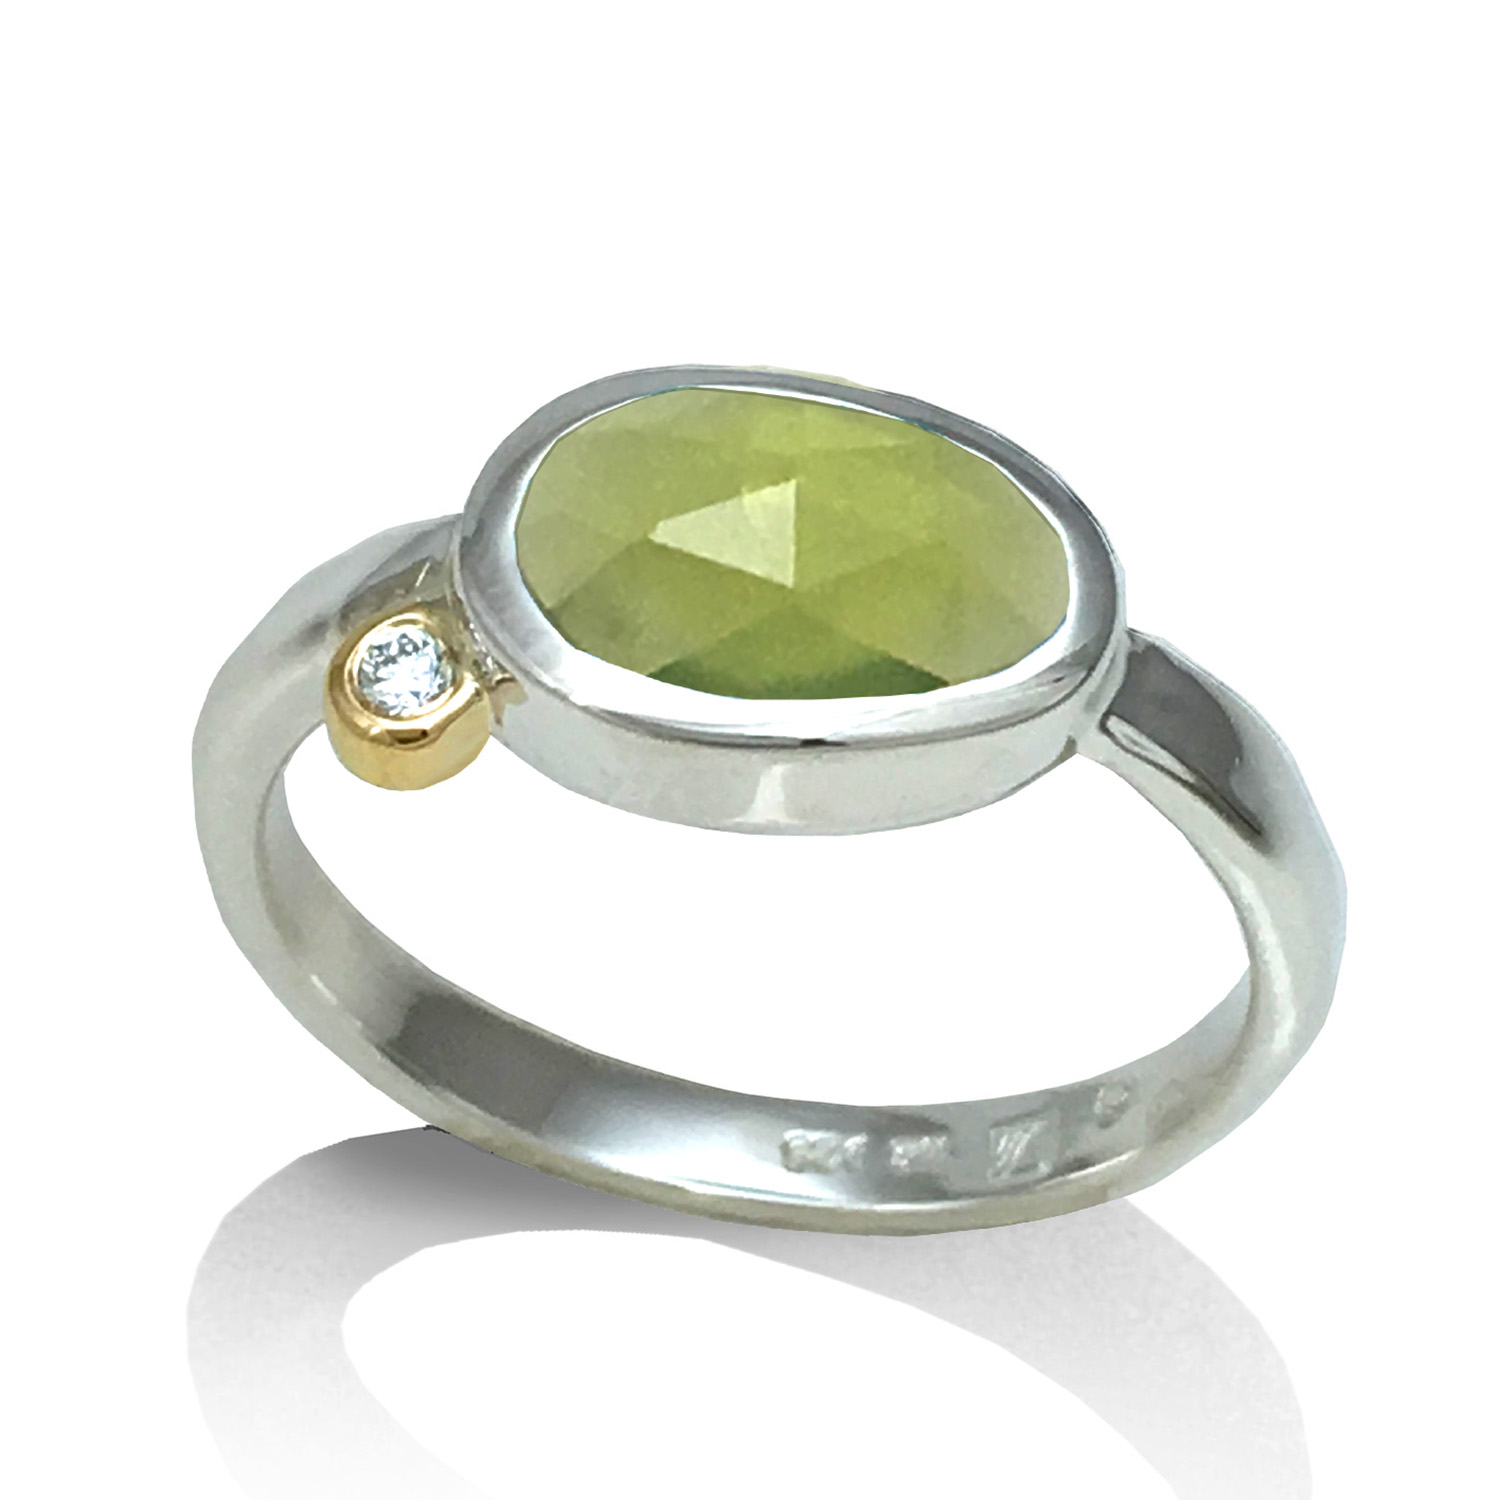 Green Peridot Ring from K.Mita Design | Traditional August Birthstone